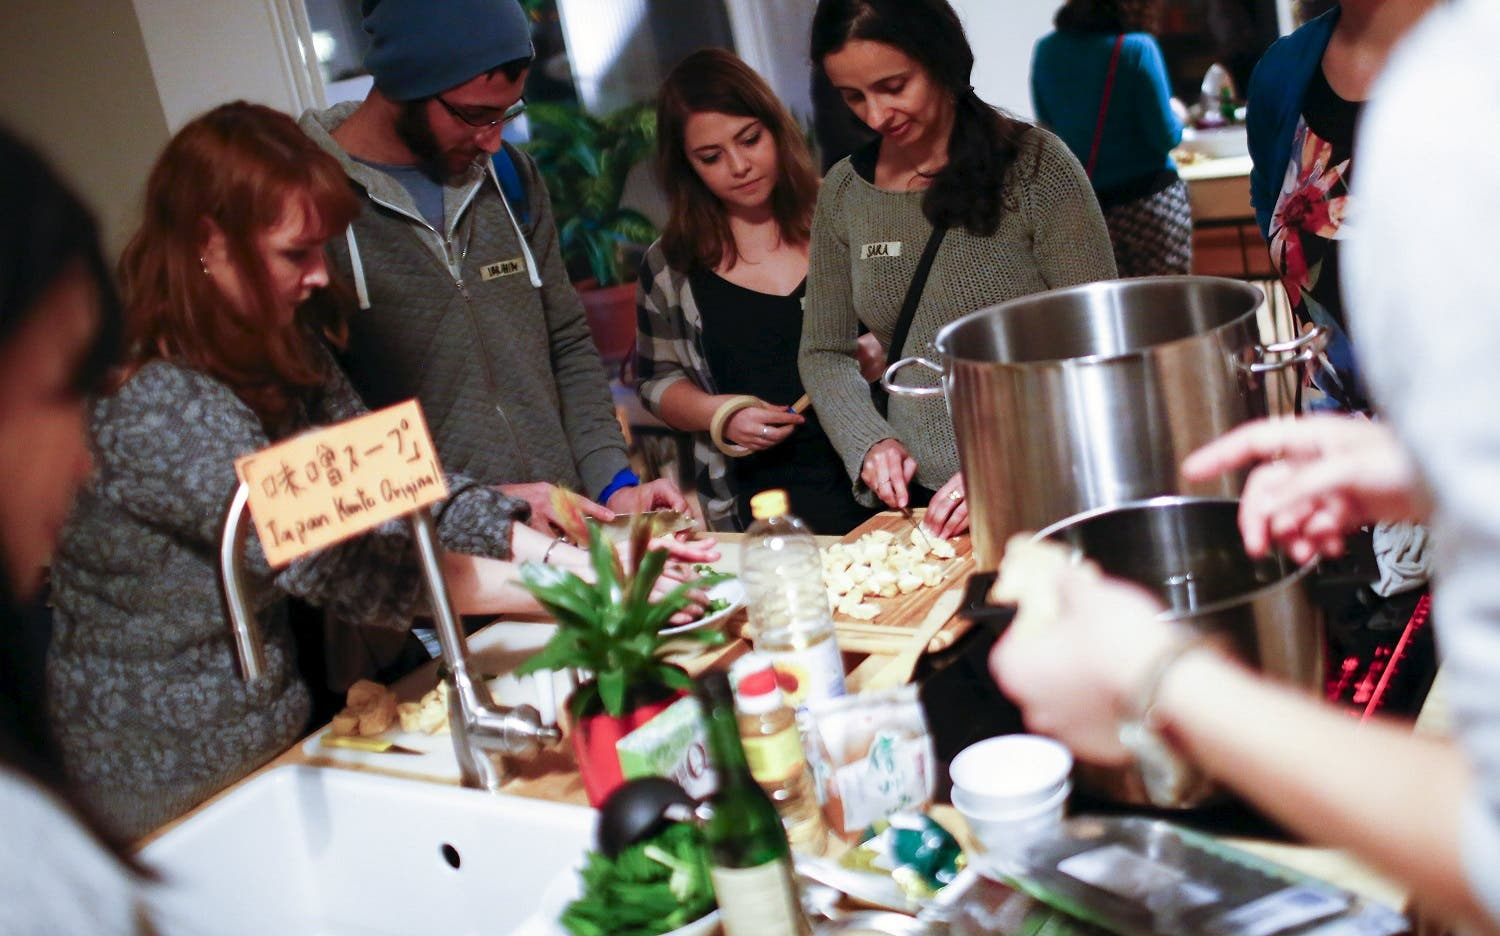 People attend a cooking workshop for Germans and migrants in Berlin. (Reuters)